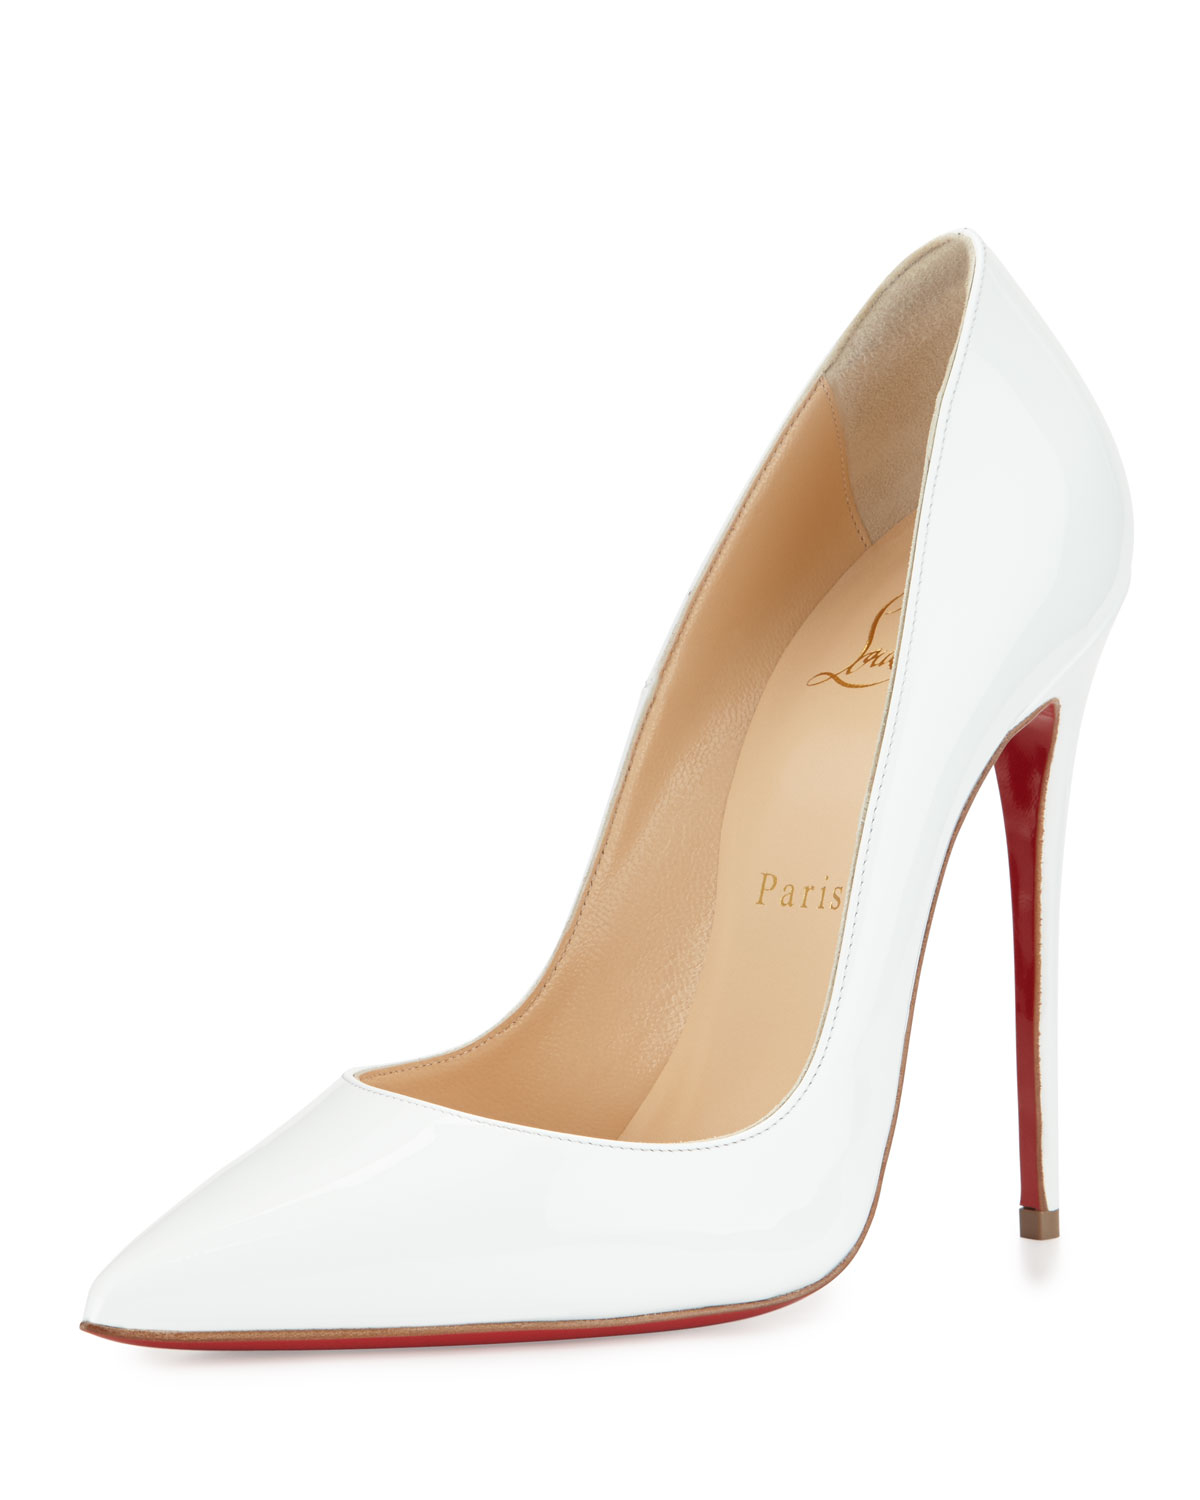 9434801cc52 Christian Louboutin White So Kate Patent 120mm Red Sole Pump